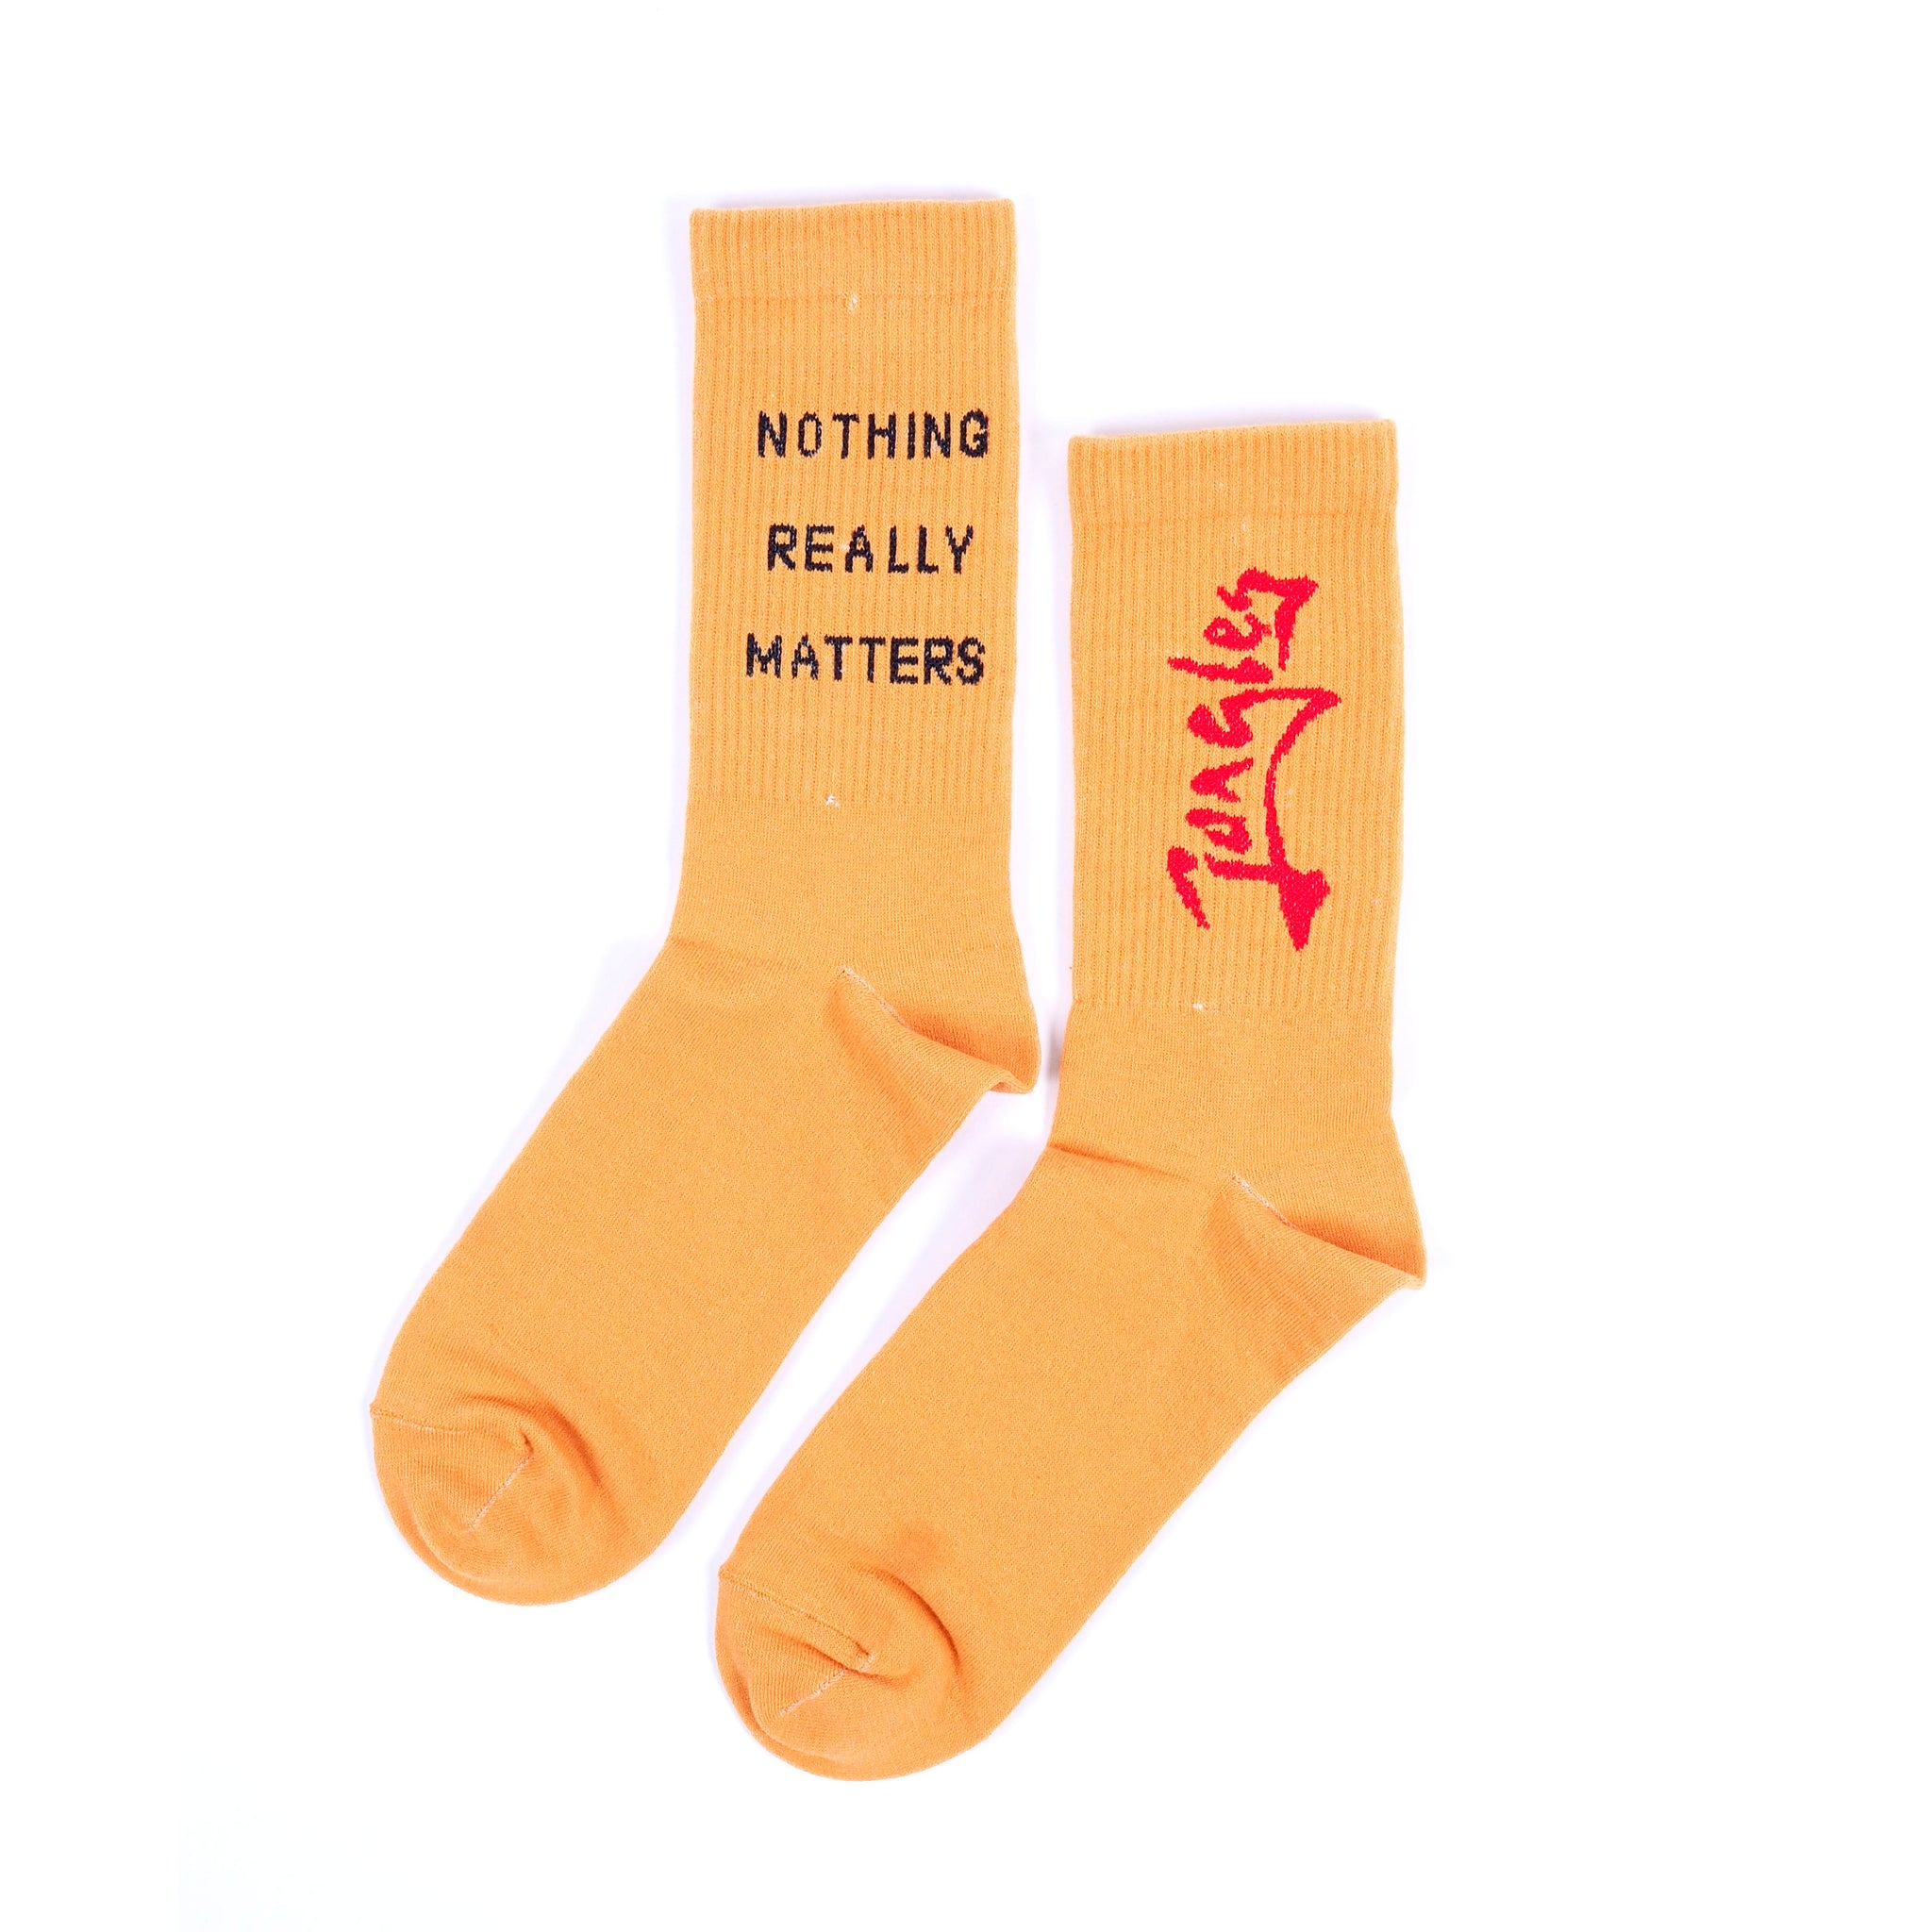 Nothing Really Matters socks